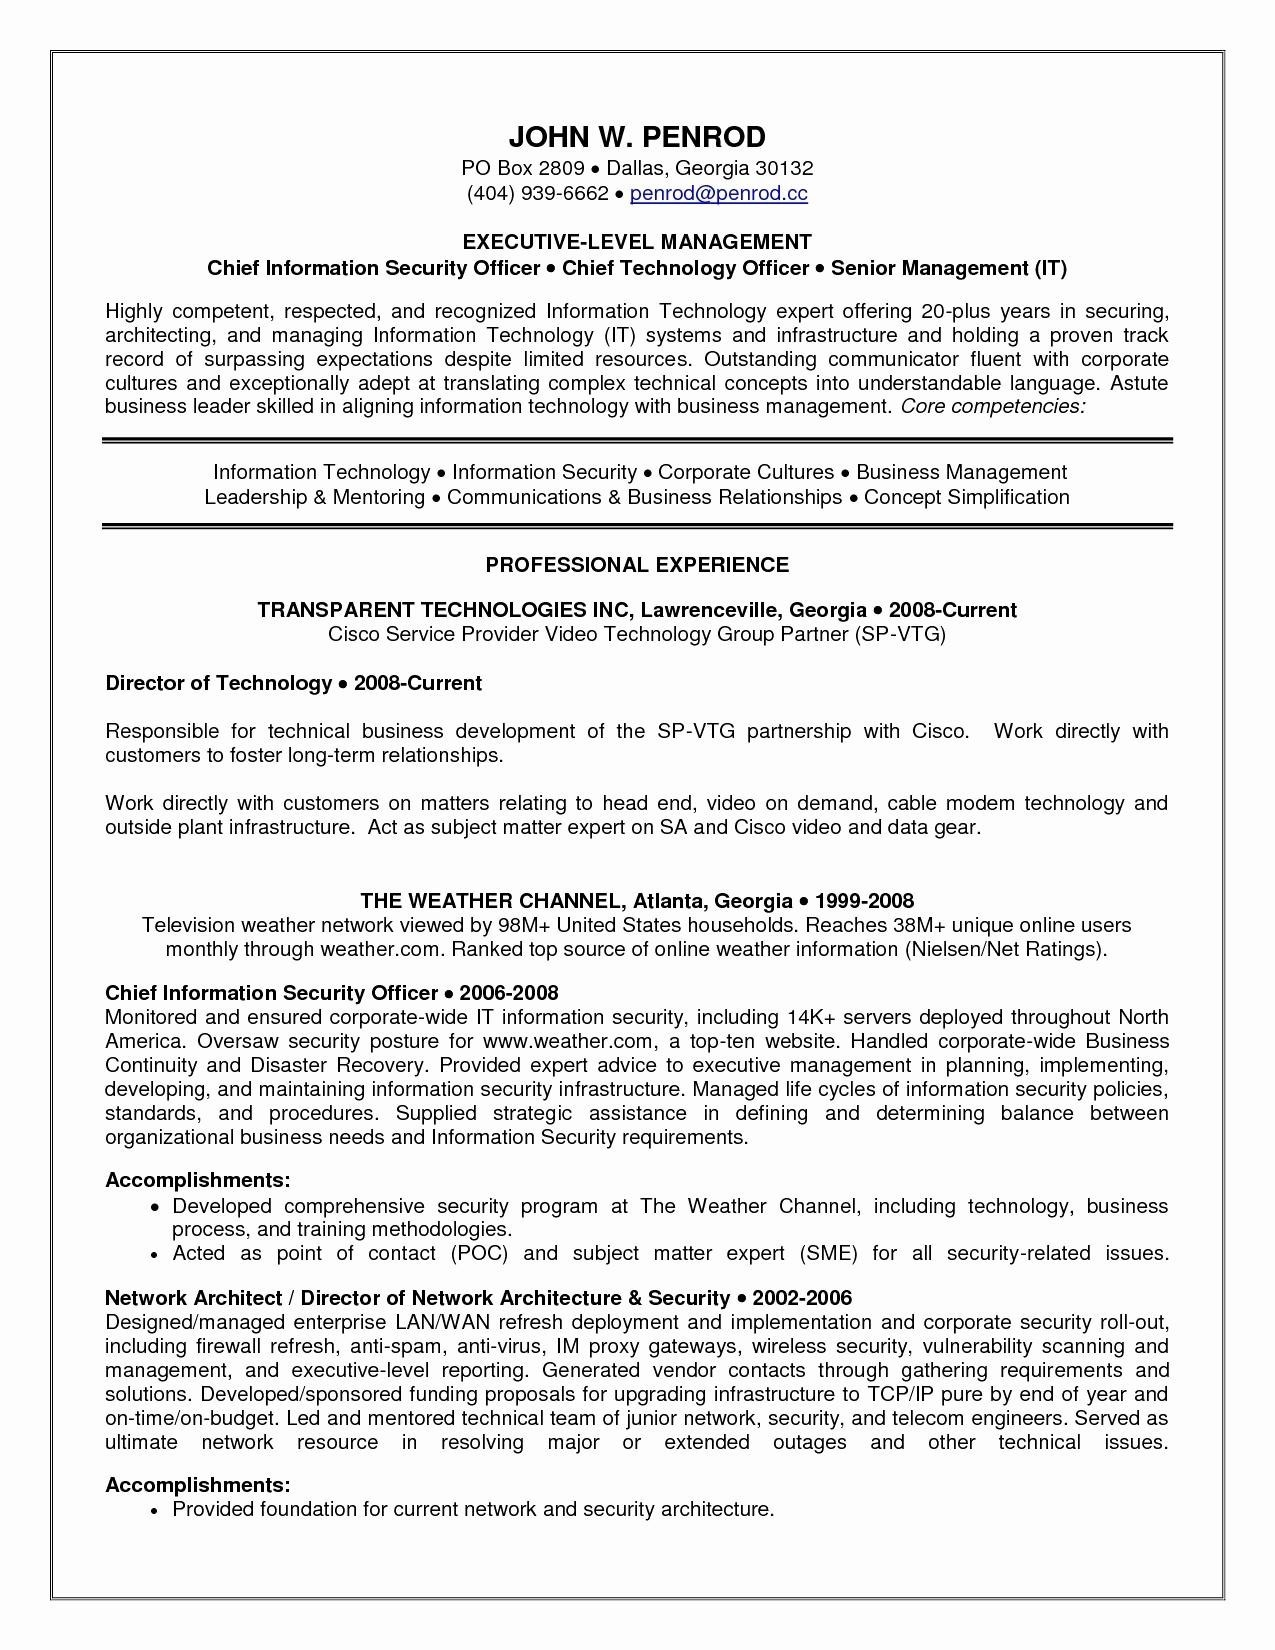 Military Experience On Resume - Holding Wallpapers Awesome Awesome Police Cover Letter – Military